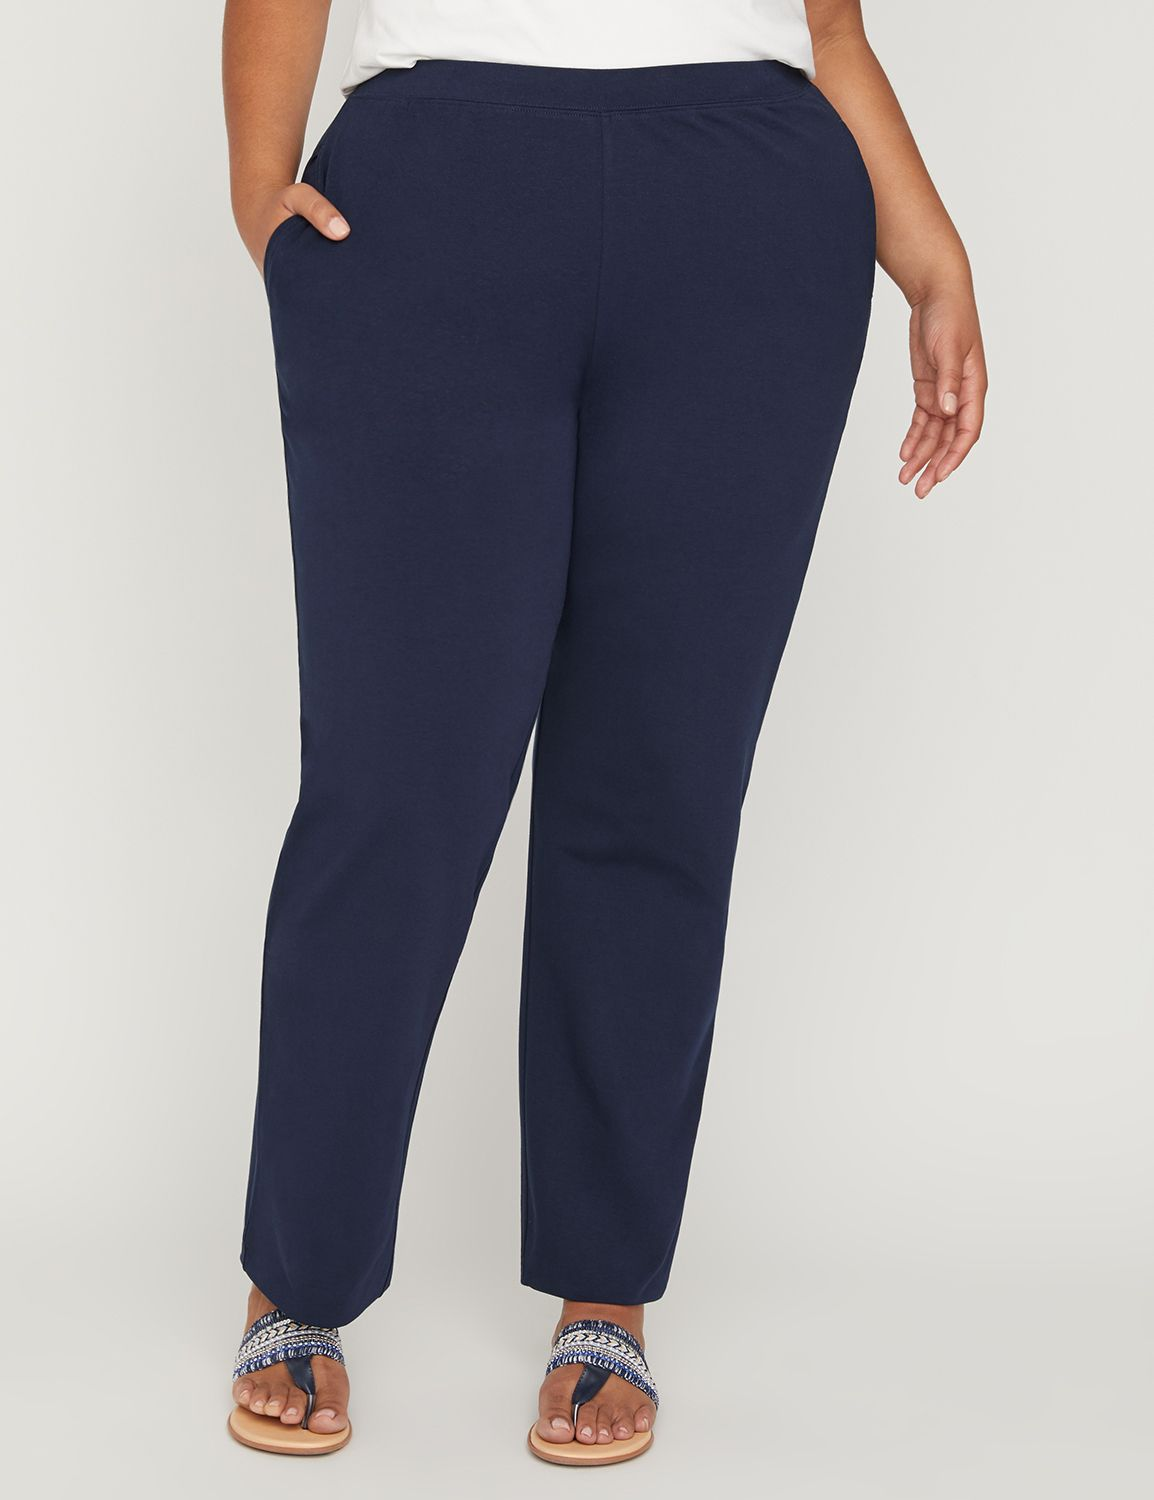 Suprema Knit Pant (Classic Colors) Suprema Knit Pant (Classic Colors) MP-300009673